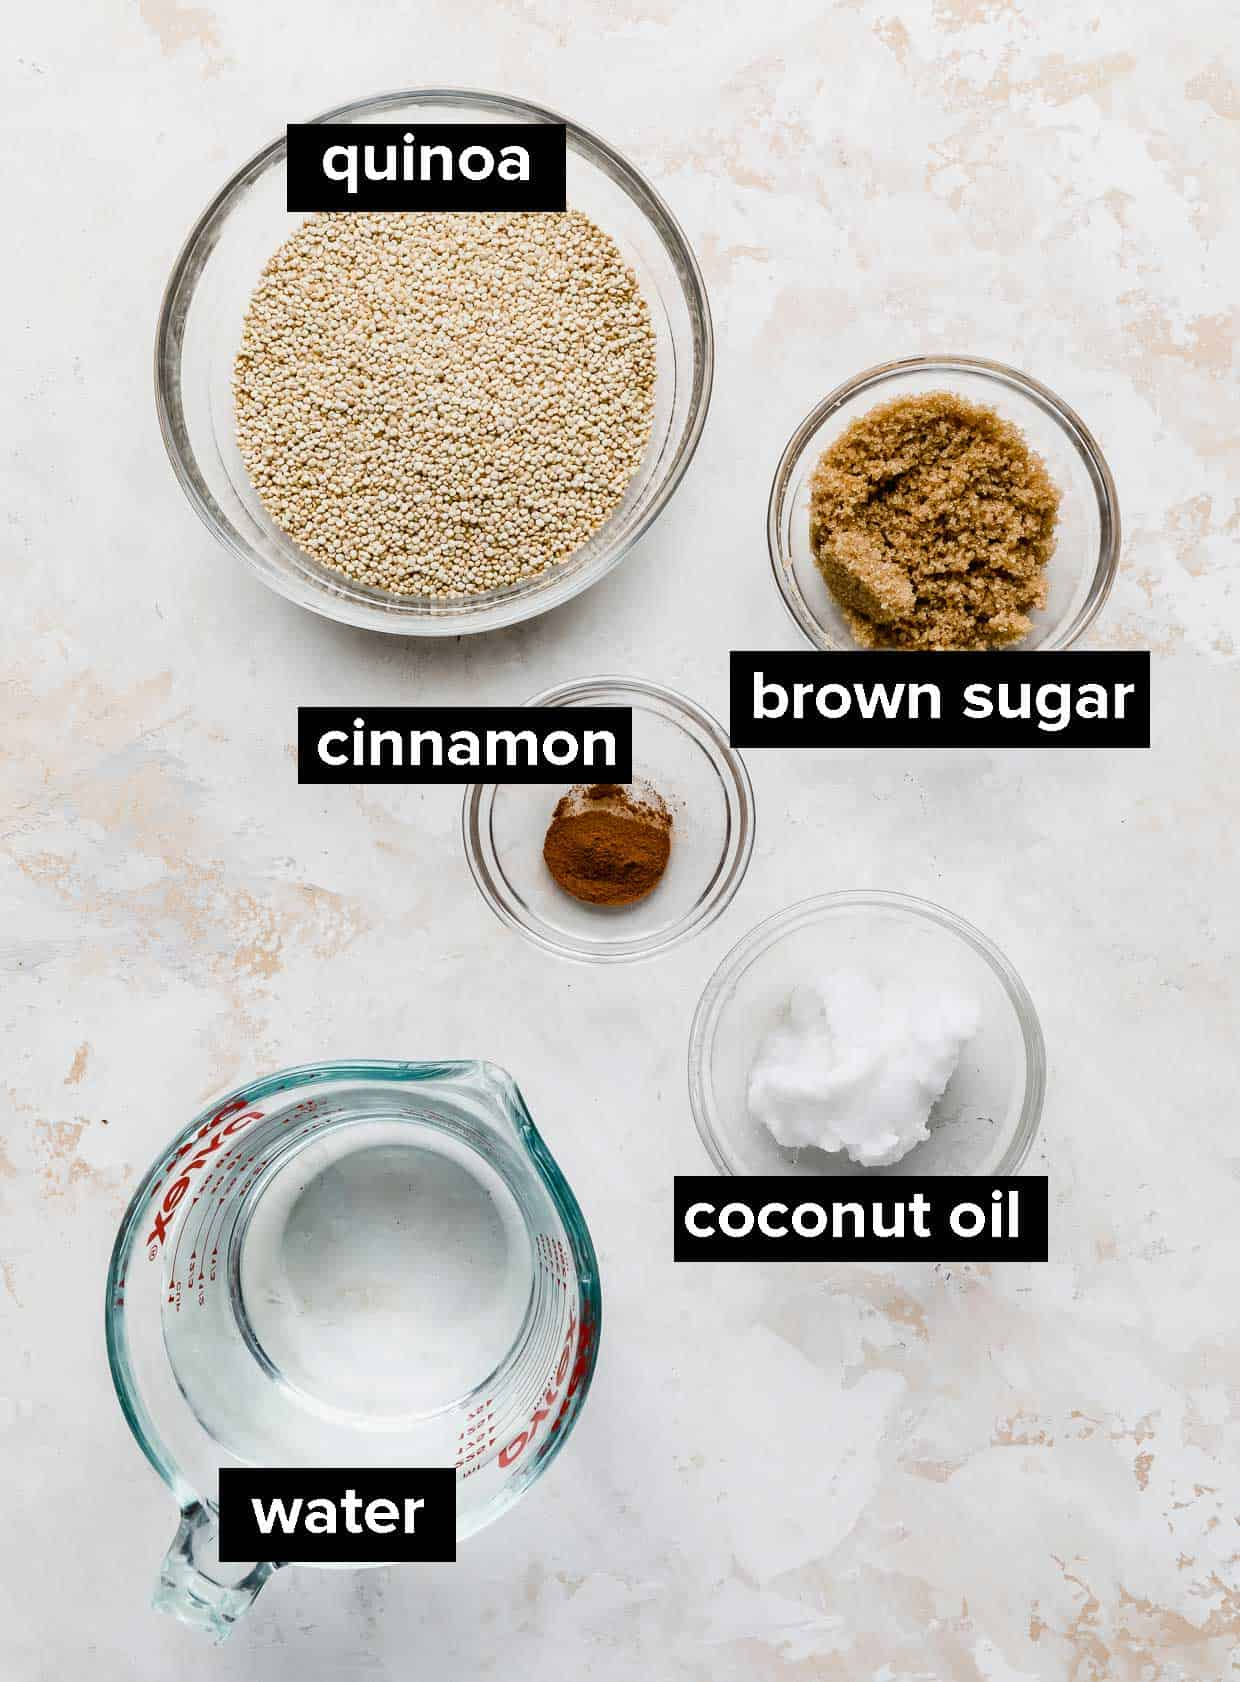 Ingredients used to make breakfast quinoa on a white background.